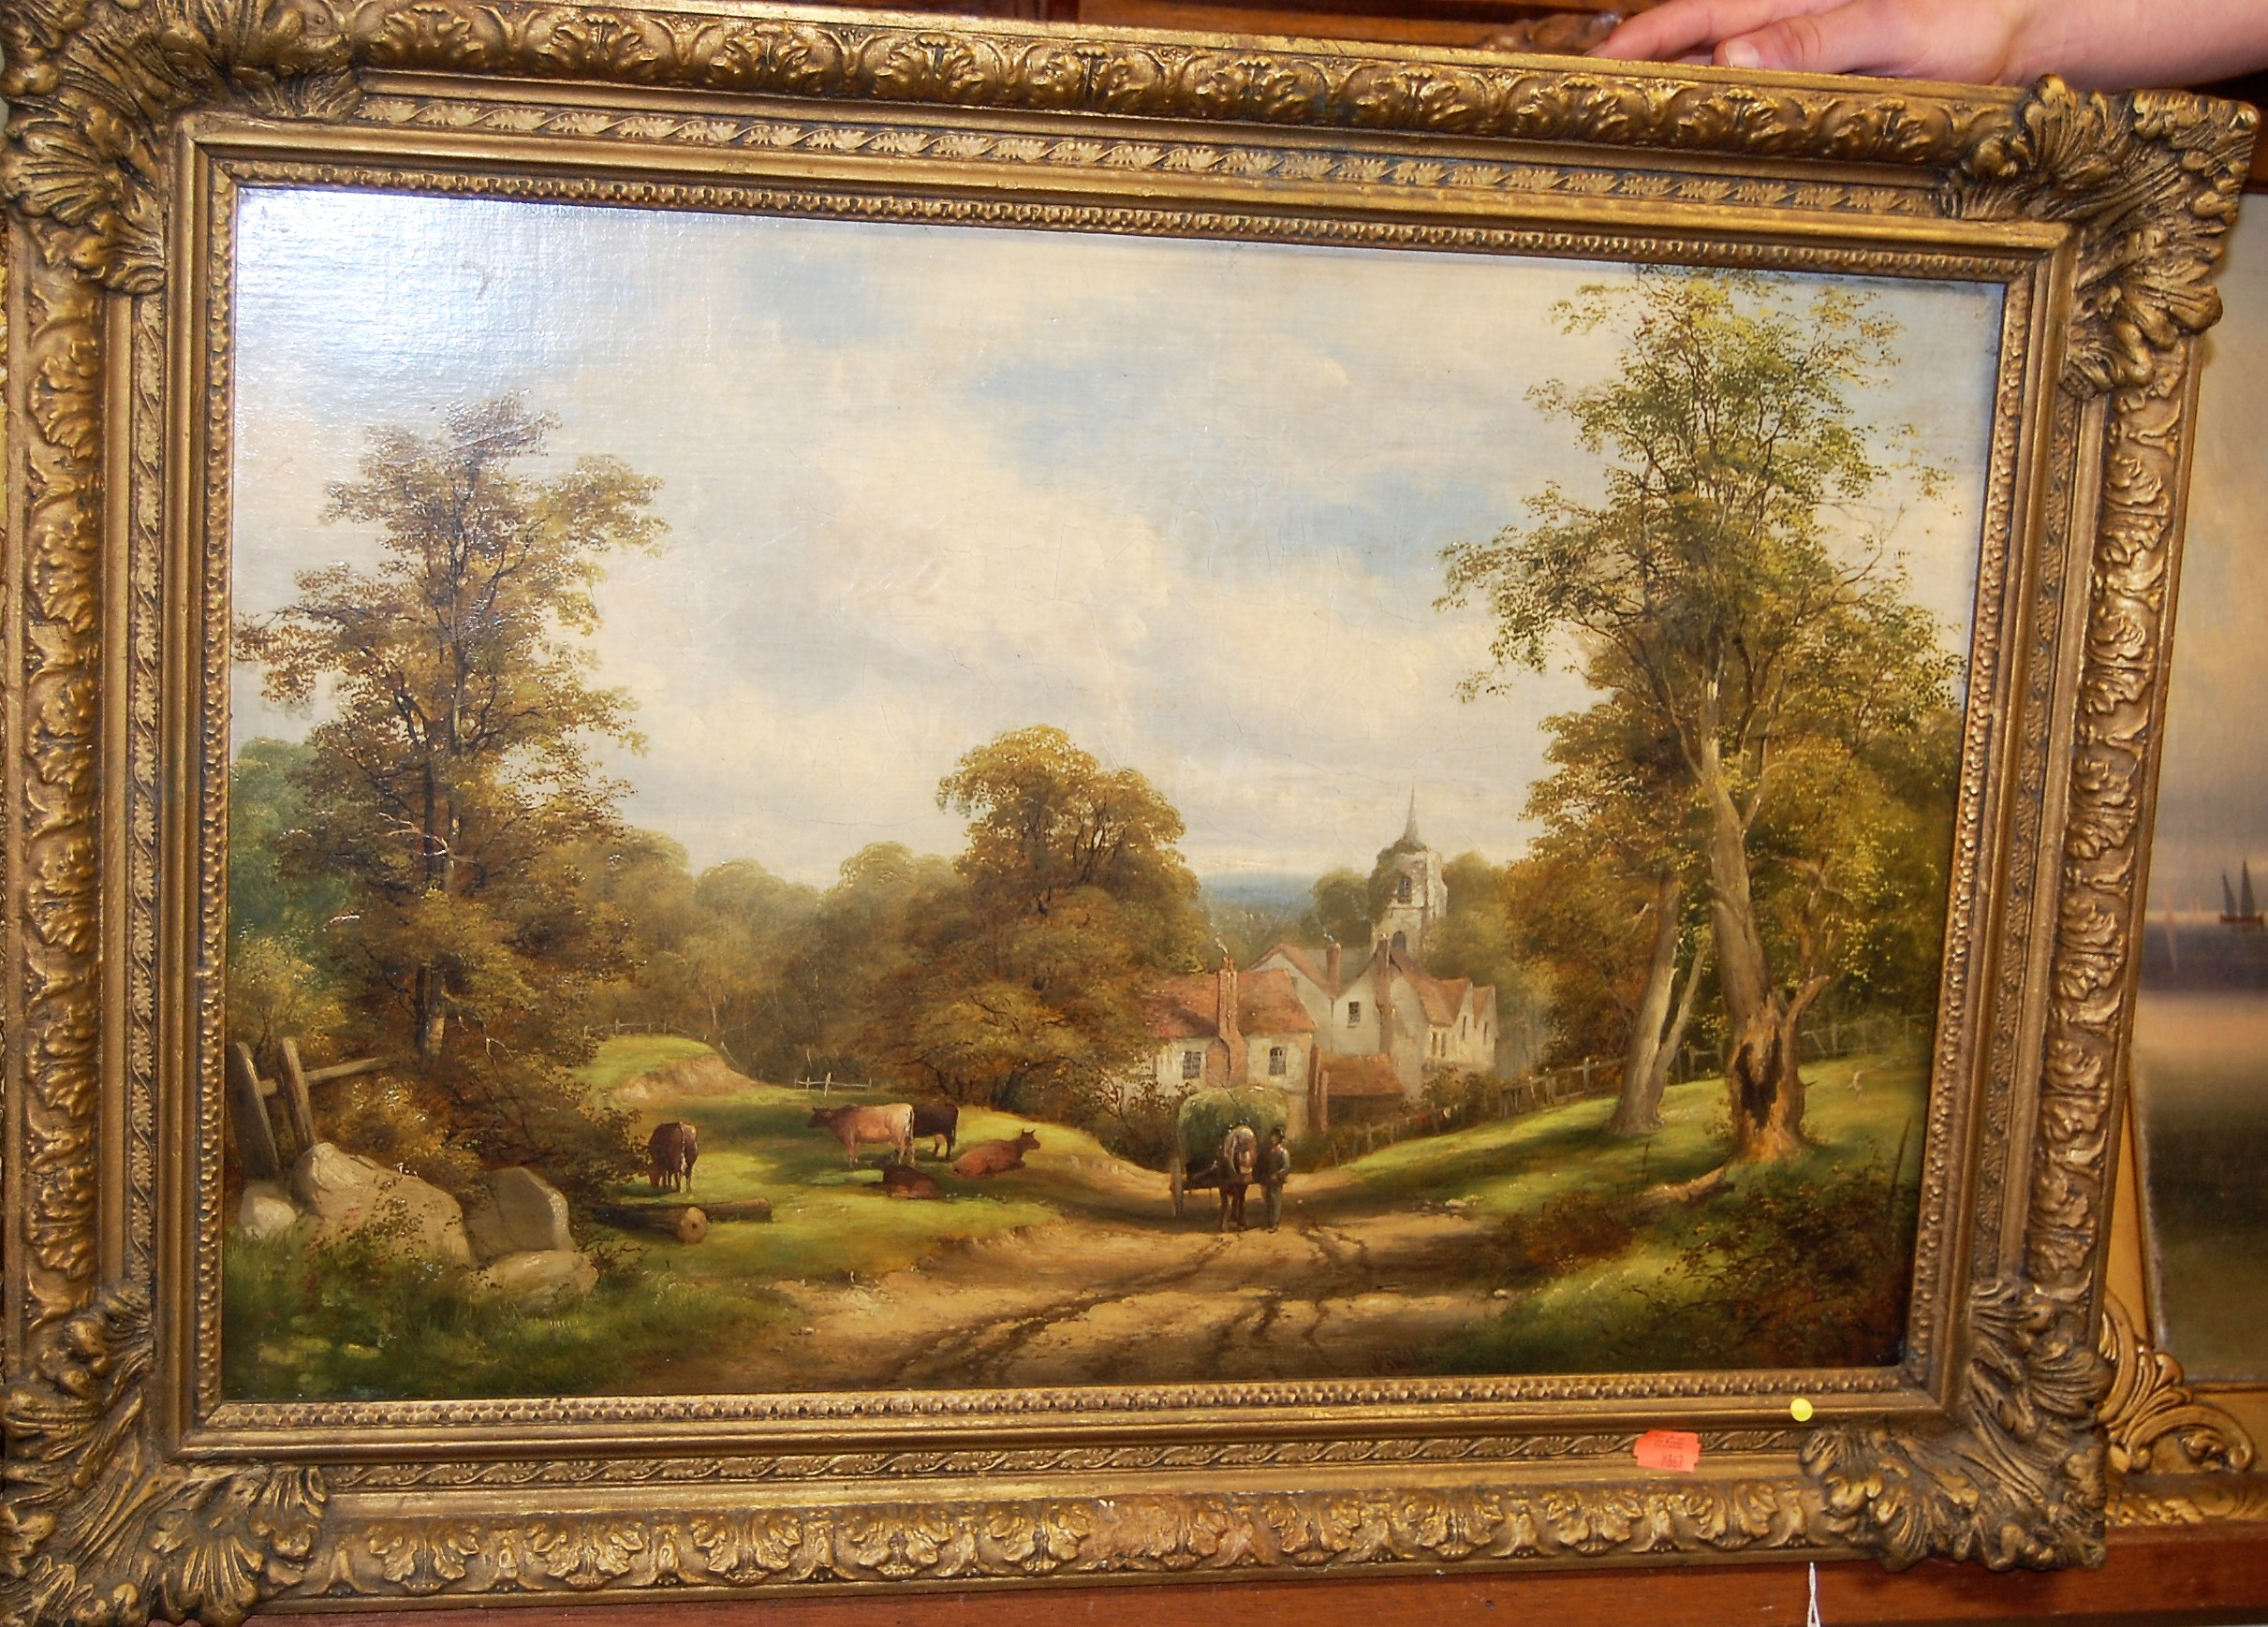 Lot 1007 - Circa 1900 English school - Haycart in a rural landscape, oil on canvas, 39 x 59cm